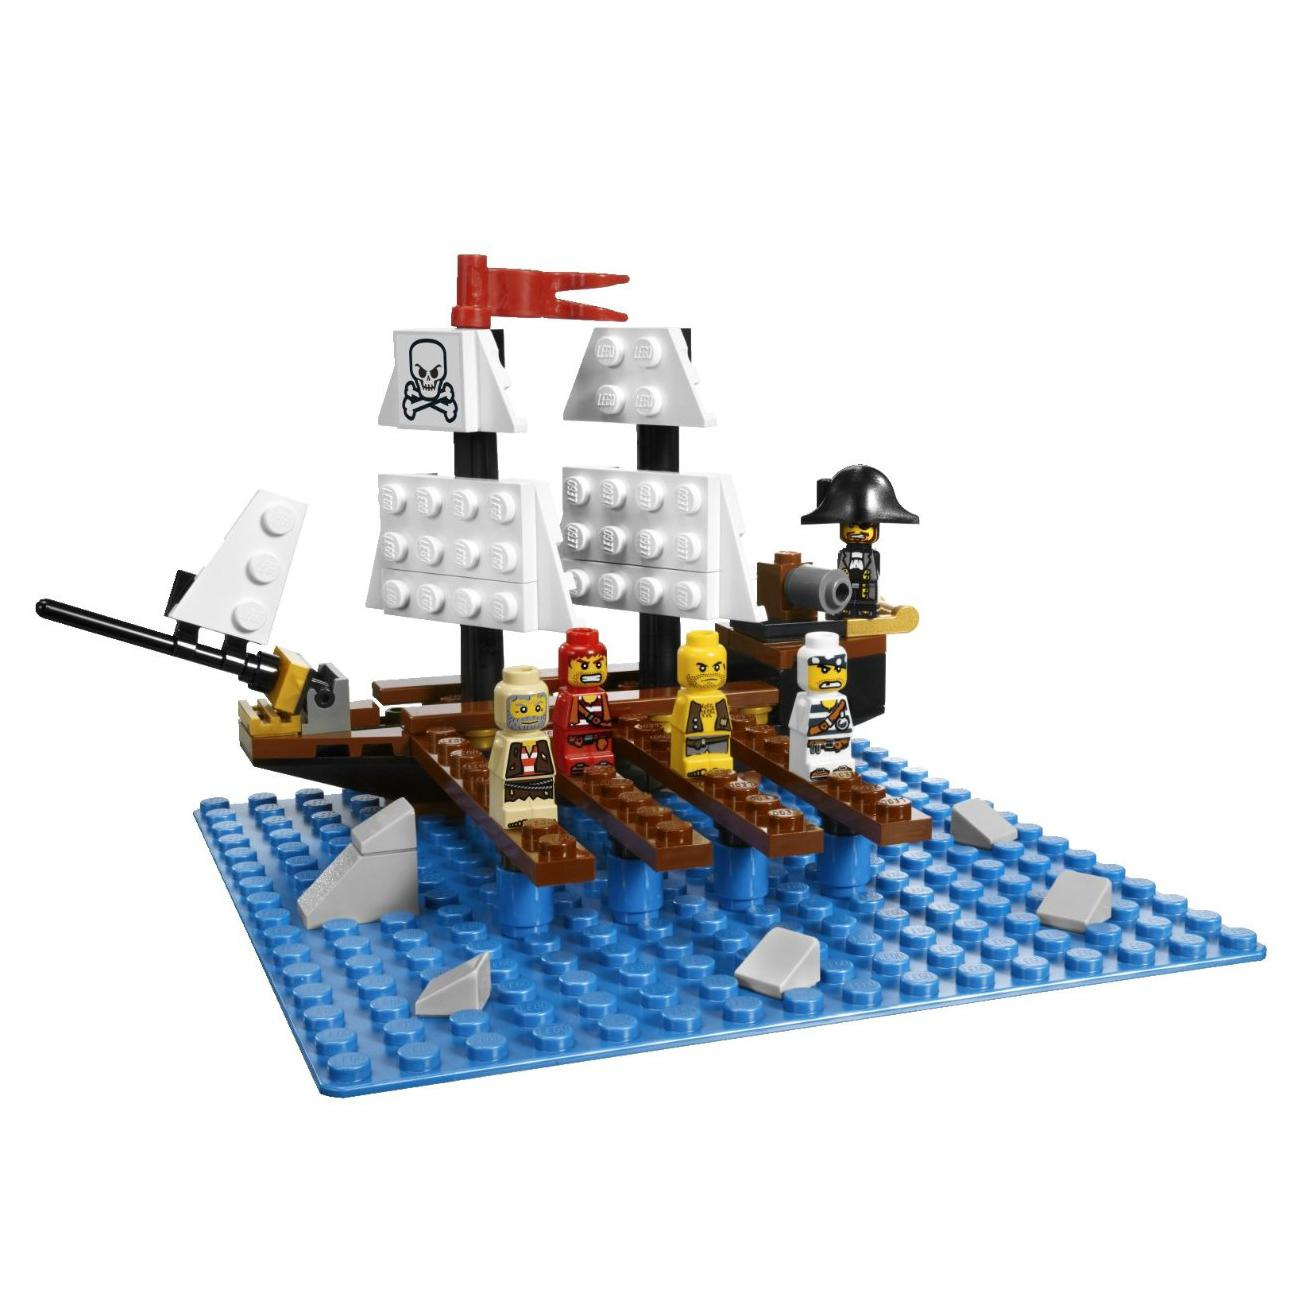 Toy Pirate Lego : New lego pirate plank mini figure board game toy ebay